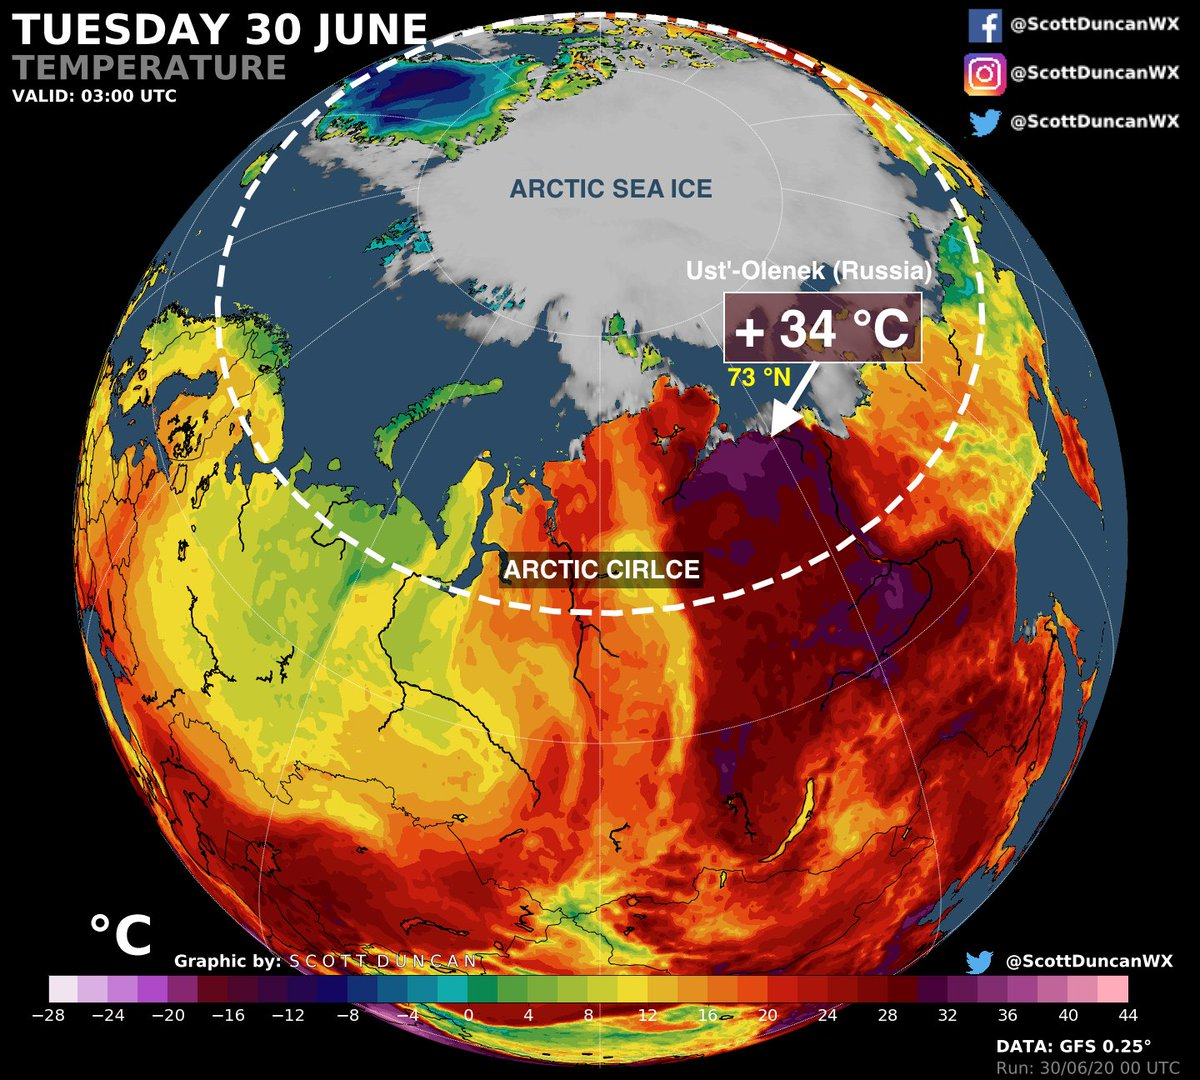 Just a reminder. #ClimateChange is real. It's caused by human activities. It's preventable. AND IT'S STILL HAPPENING.  The Arctic continues to swelter with record temps of 34°C (92°F). The average is 10°C (50°F). RT. We need to do better. https://t.co/4j7aV5ZbTs